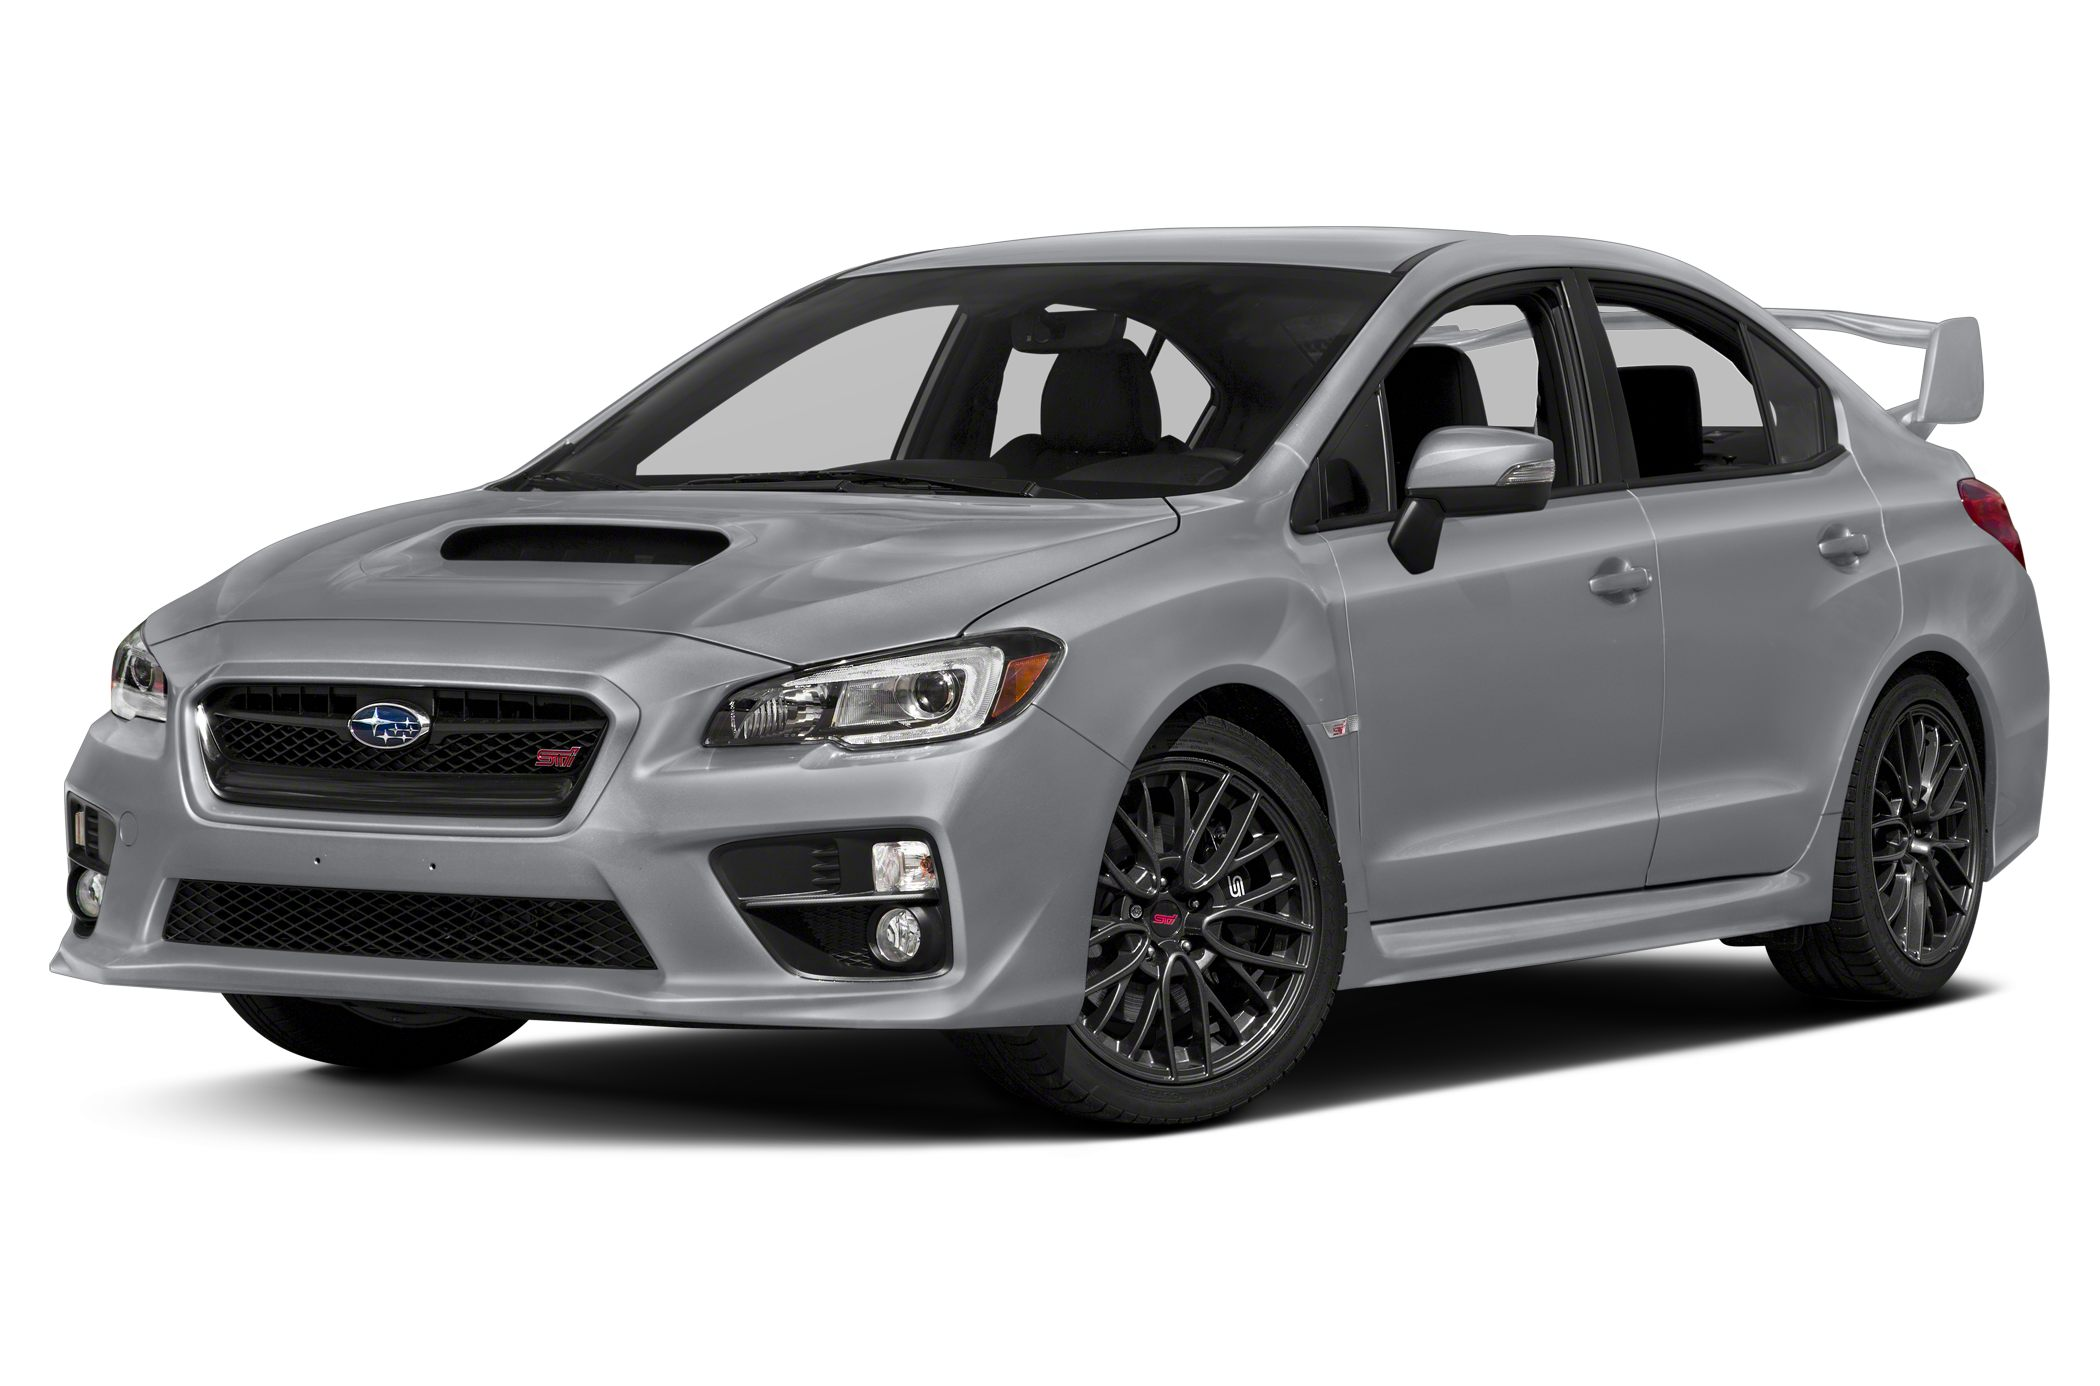 subaru wrx sti s207 limited to 400 units in japan only autoblog. Black Bedroom Furniture Sets. Home Design Ideas